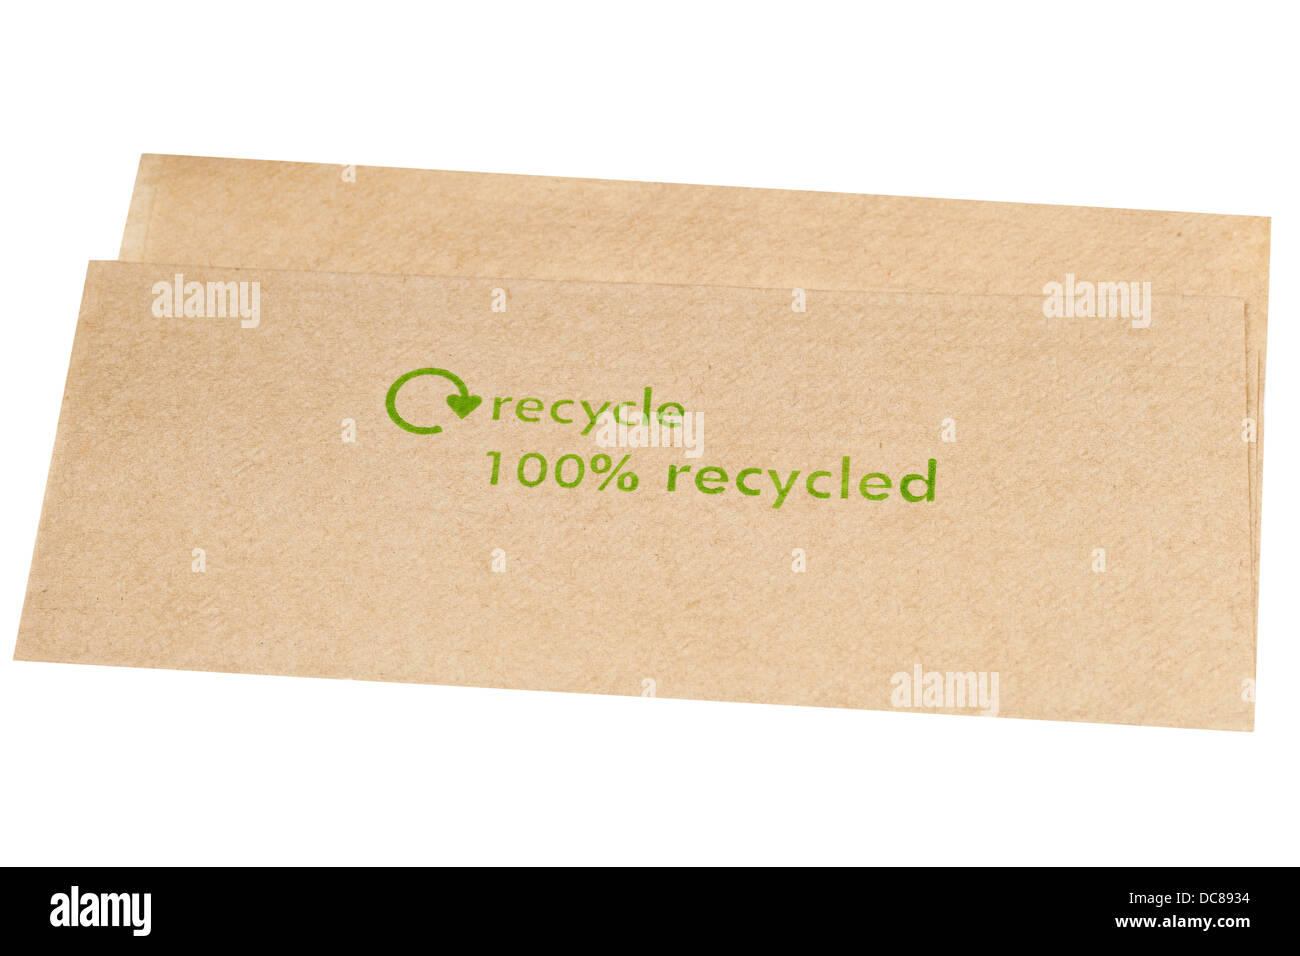 recycled paper napkin - Stock Image